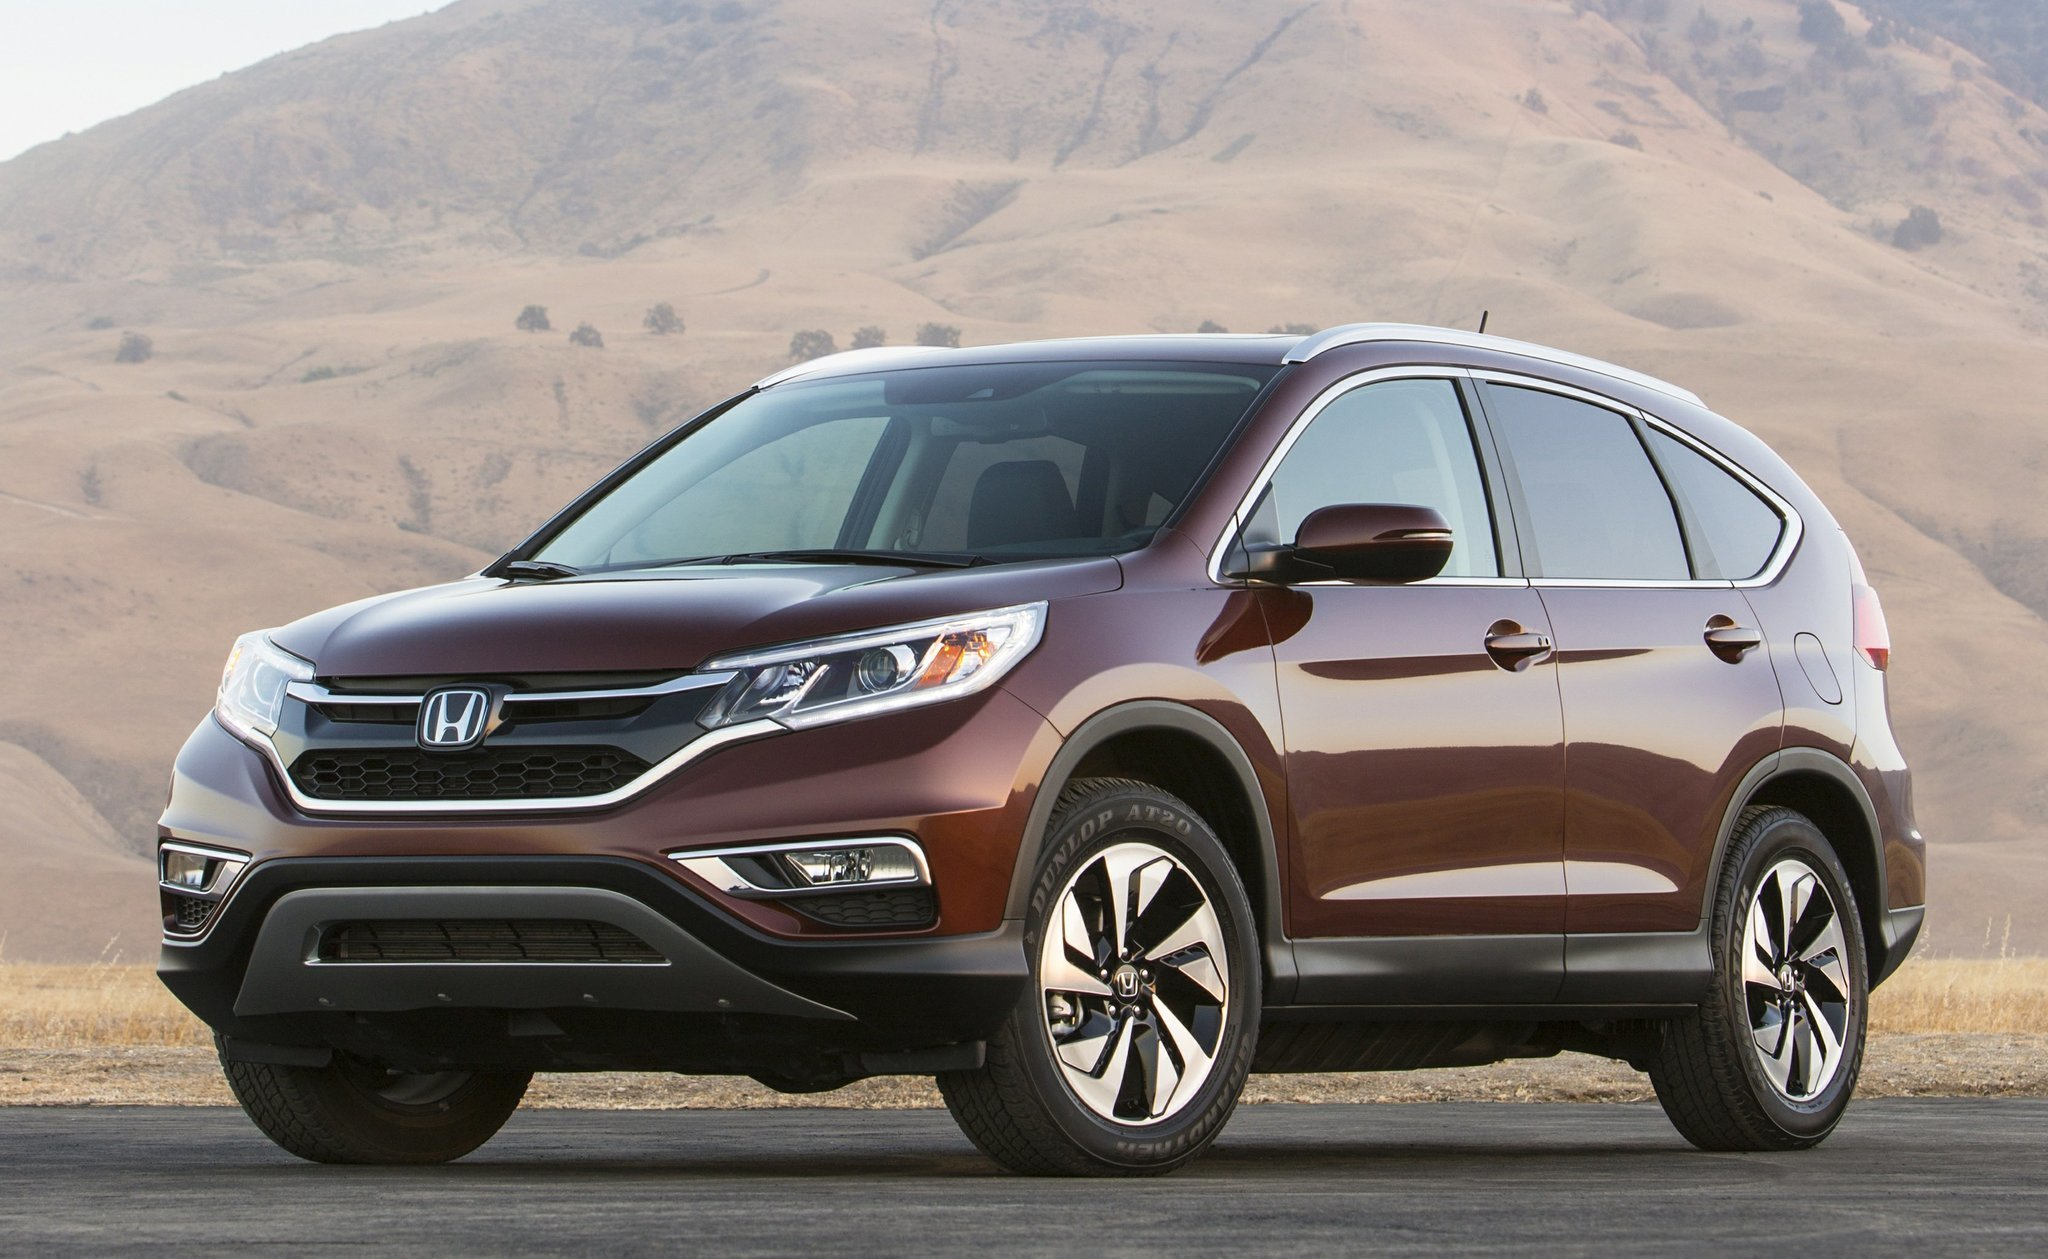 2015 honda cr v redesign upgrades features safety the san diego union tribune